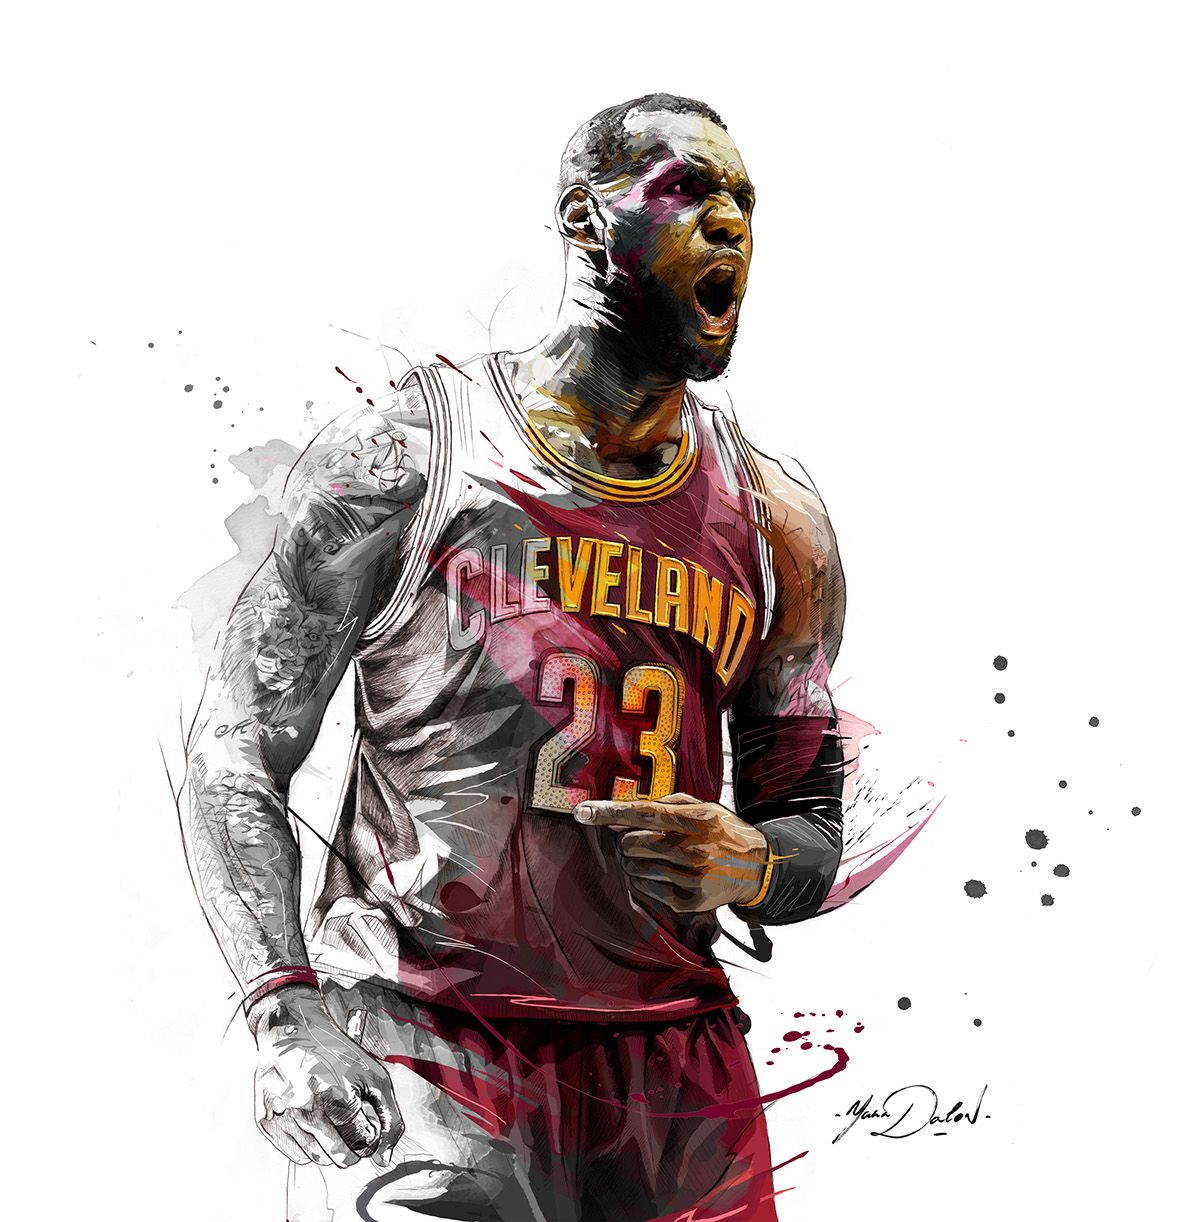 My illustration of Lebron James ,Cleveland Cavaliers